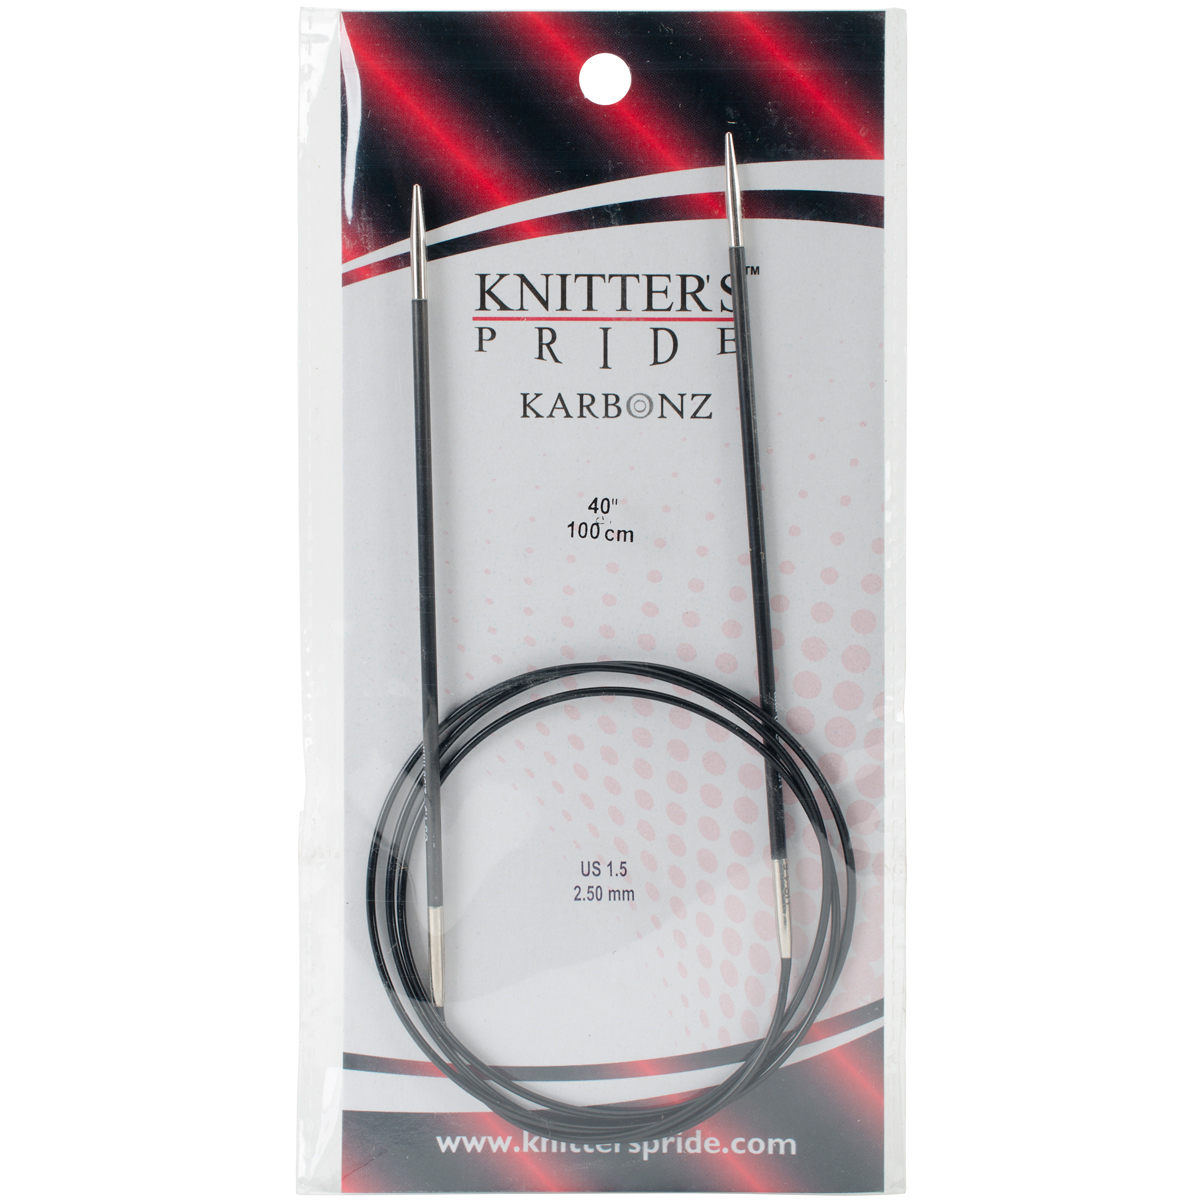 Knitter's Pride-Karbonz Fixed Circular Needles 40-Size 1.5/2.5mm